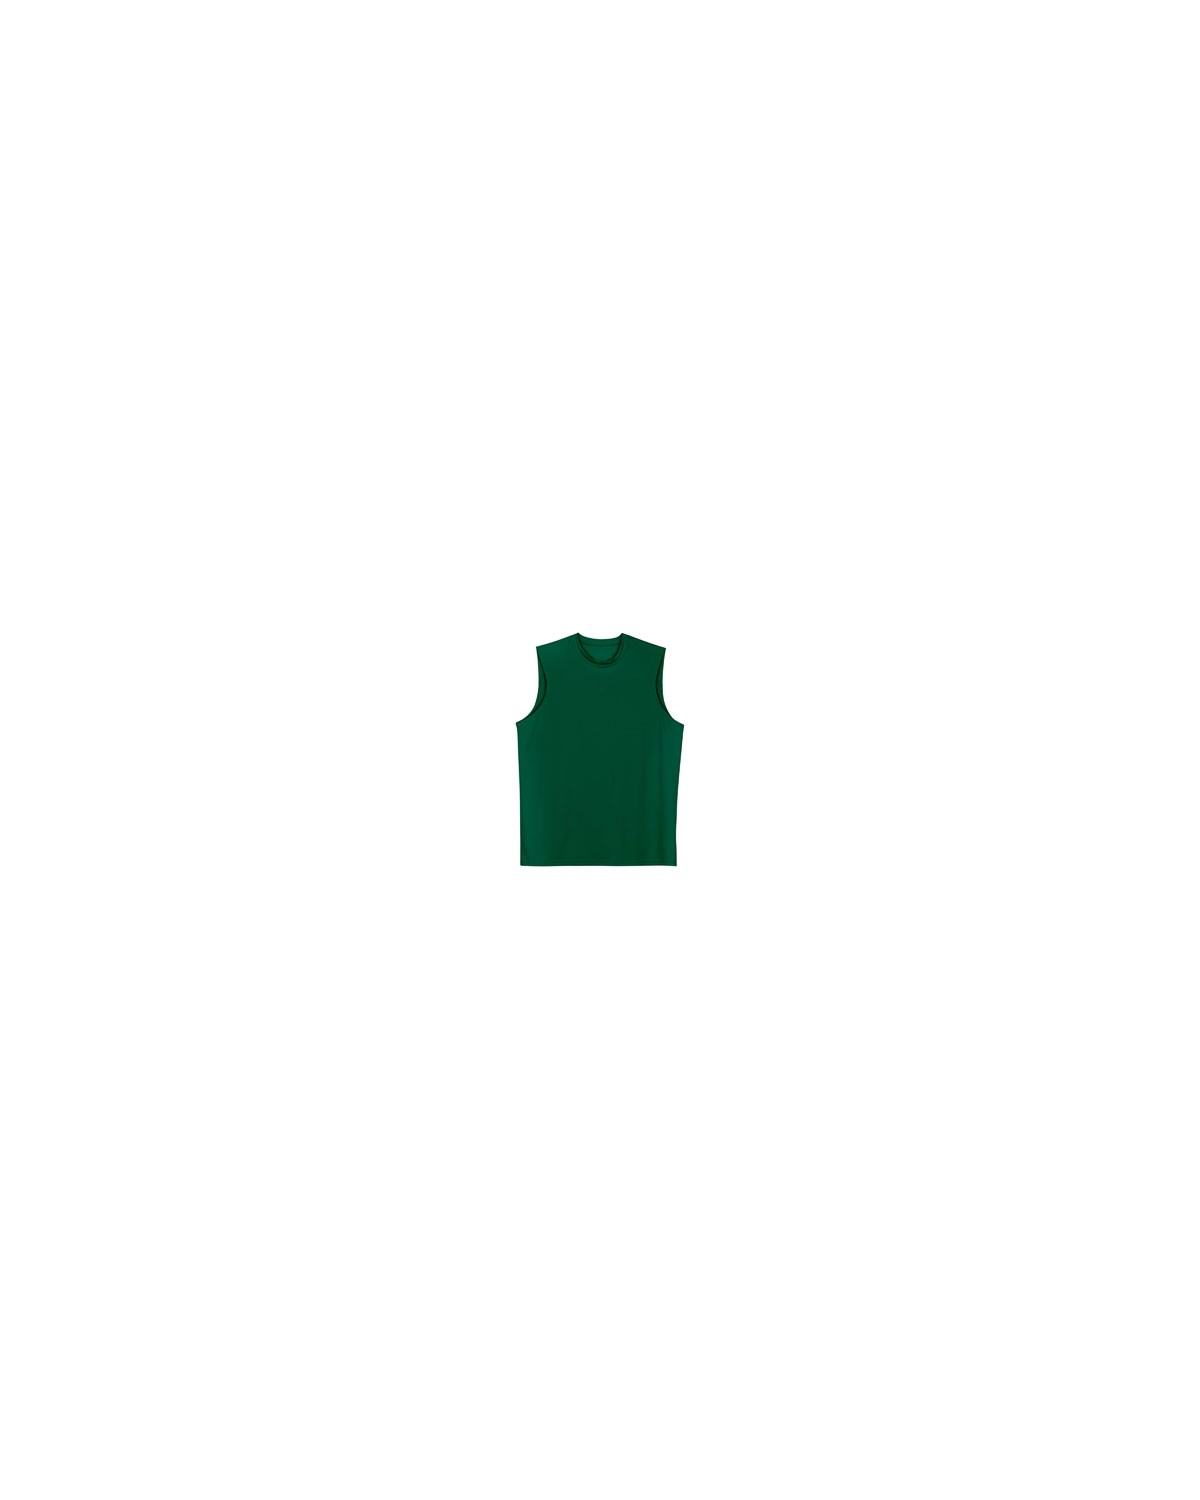 N2295 A4 Drop Ship FOREST GREEN